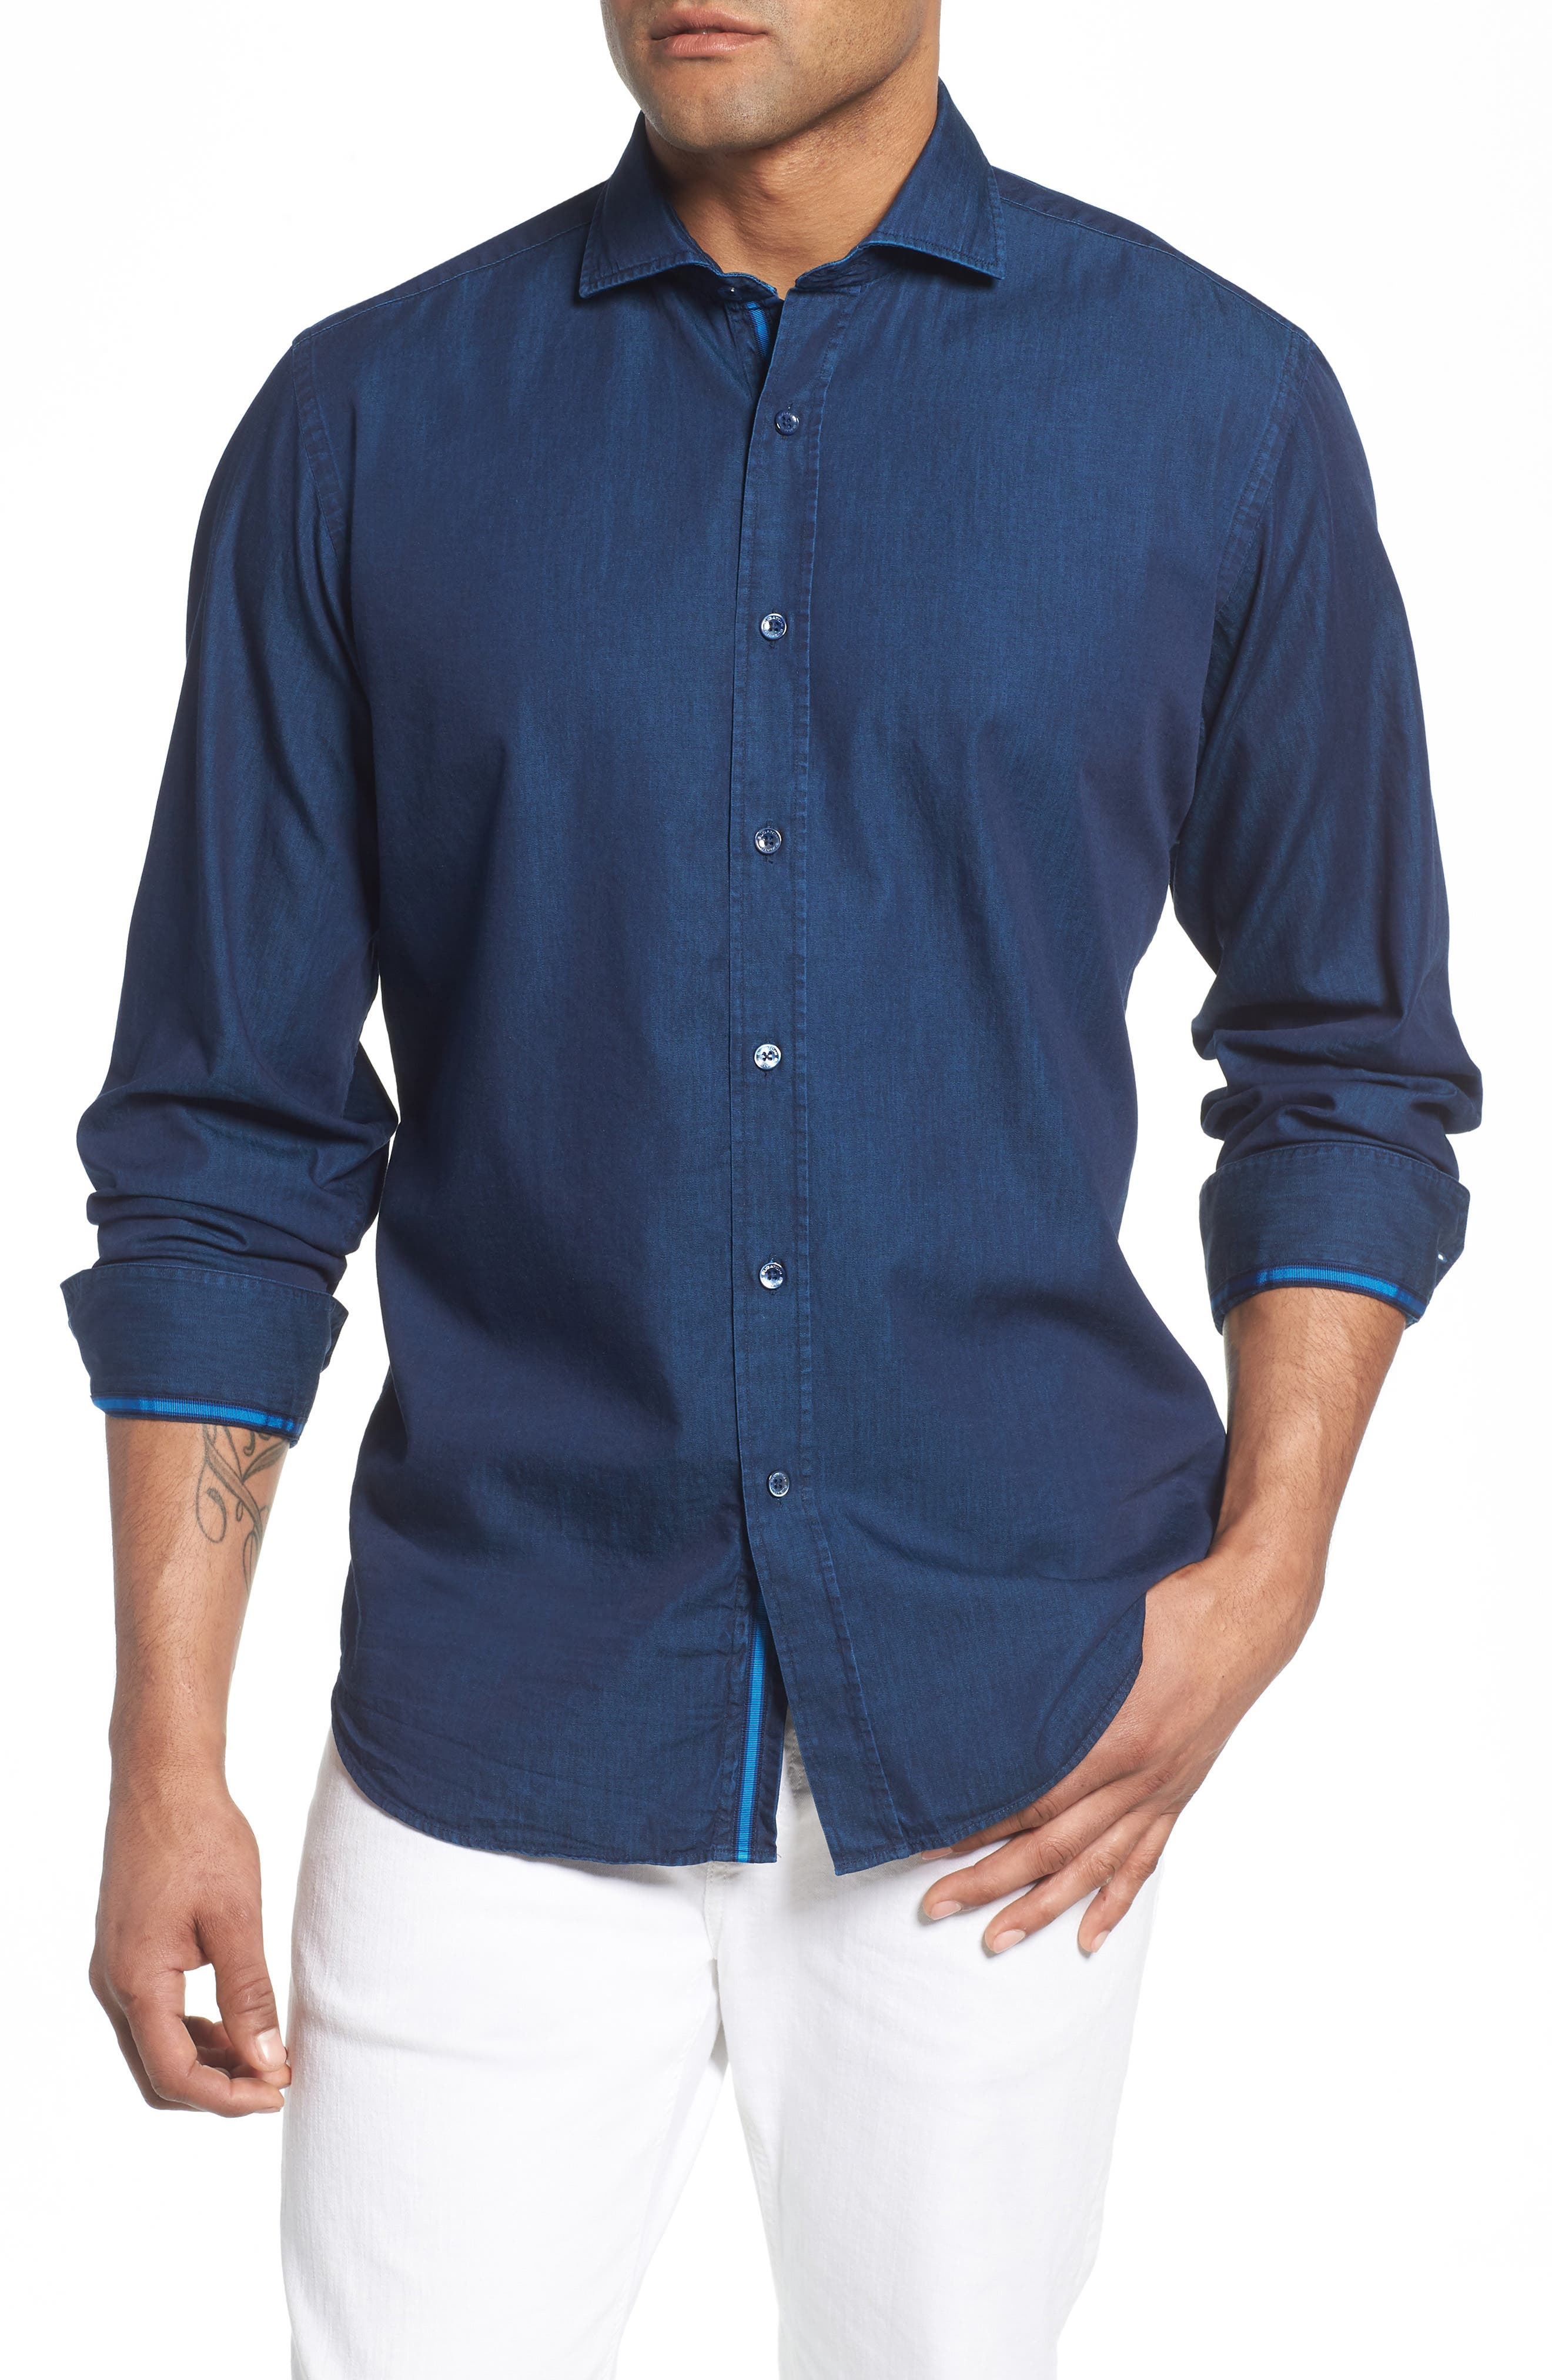 Classic Fit Indigo Sport Shirt,                         Main,                         color, Navy